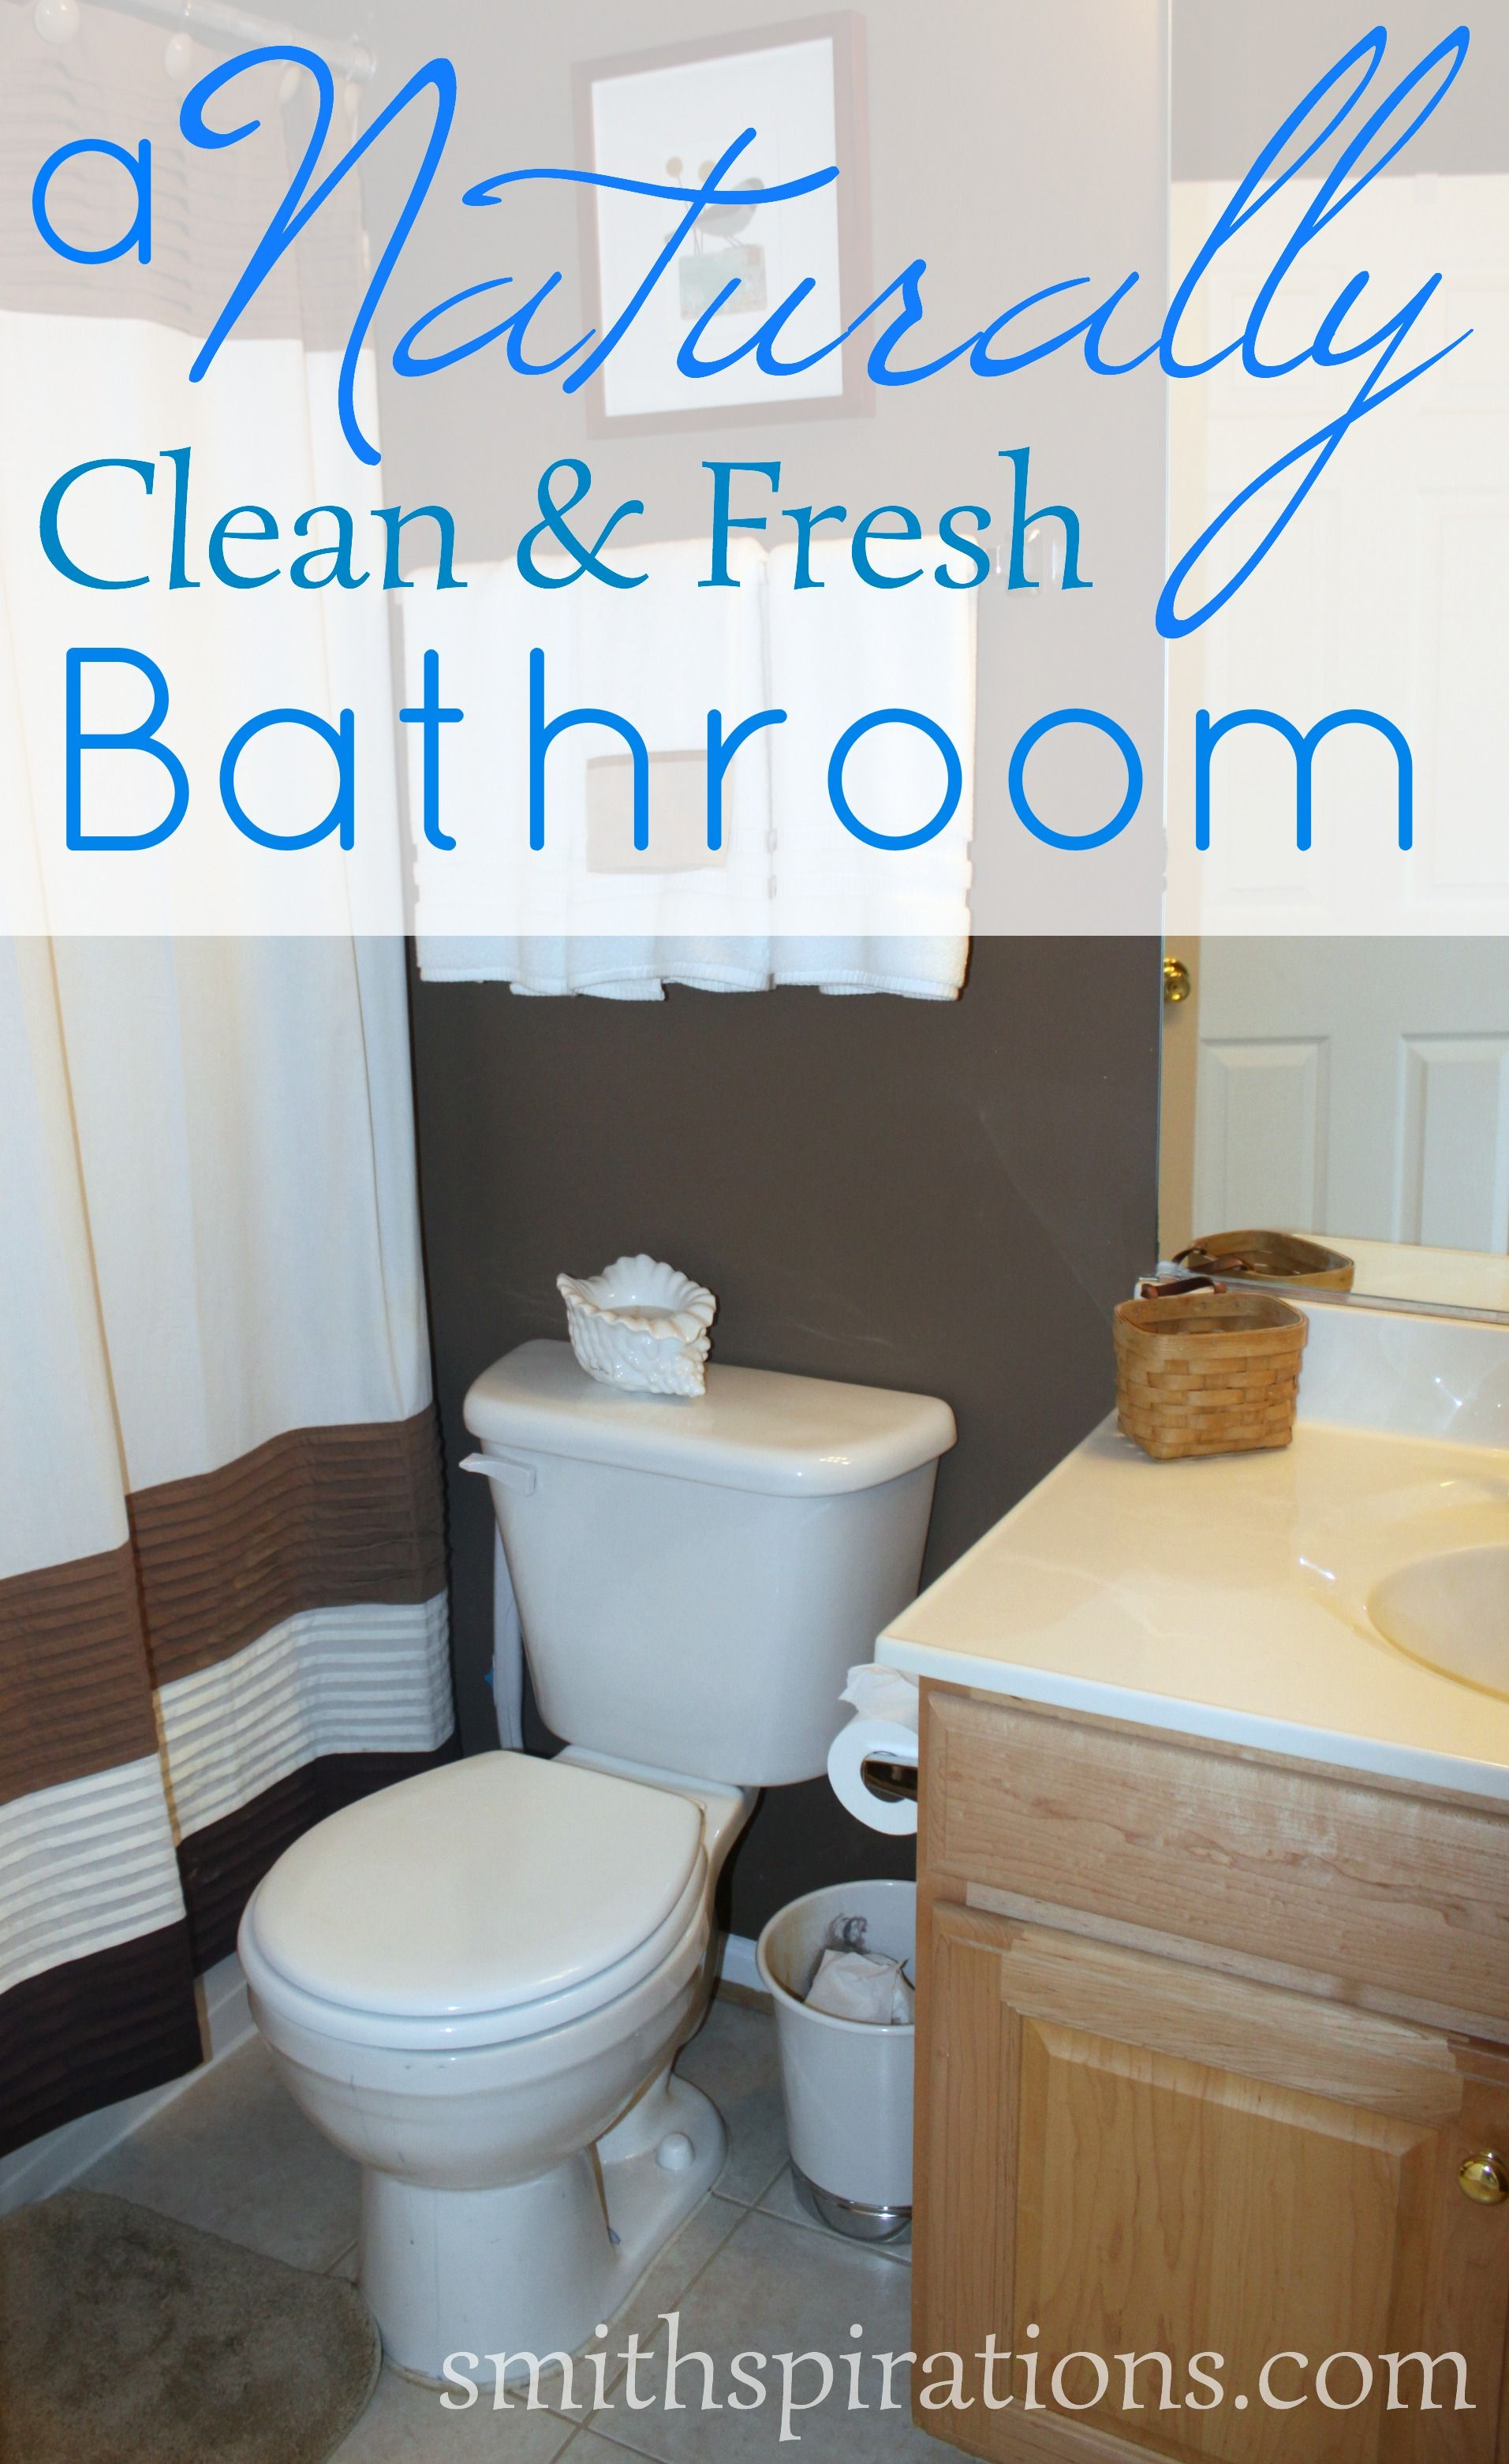 8 Tips To Keep Your Bathroom Clean Bathroom Cleaning Household Cleaning Tips Cleaning